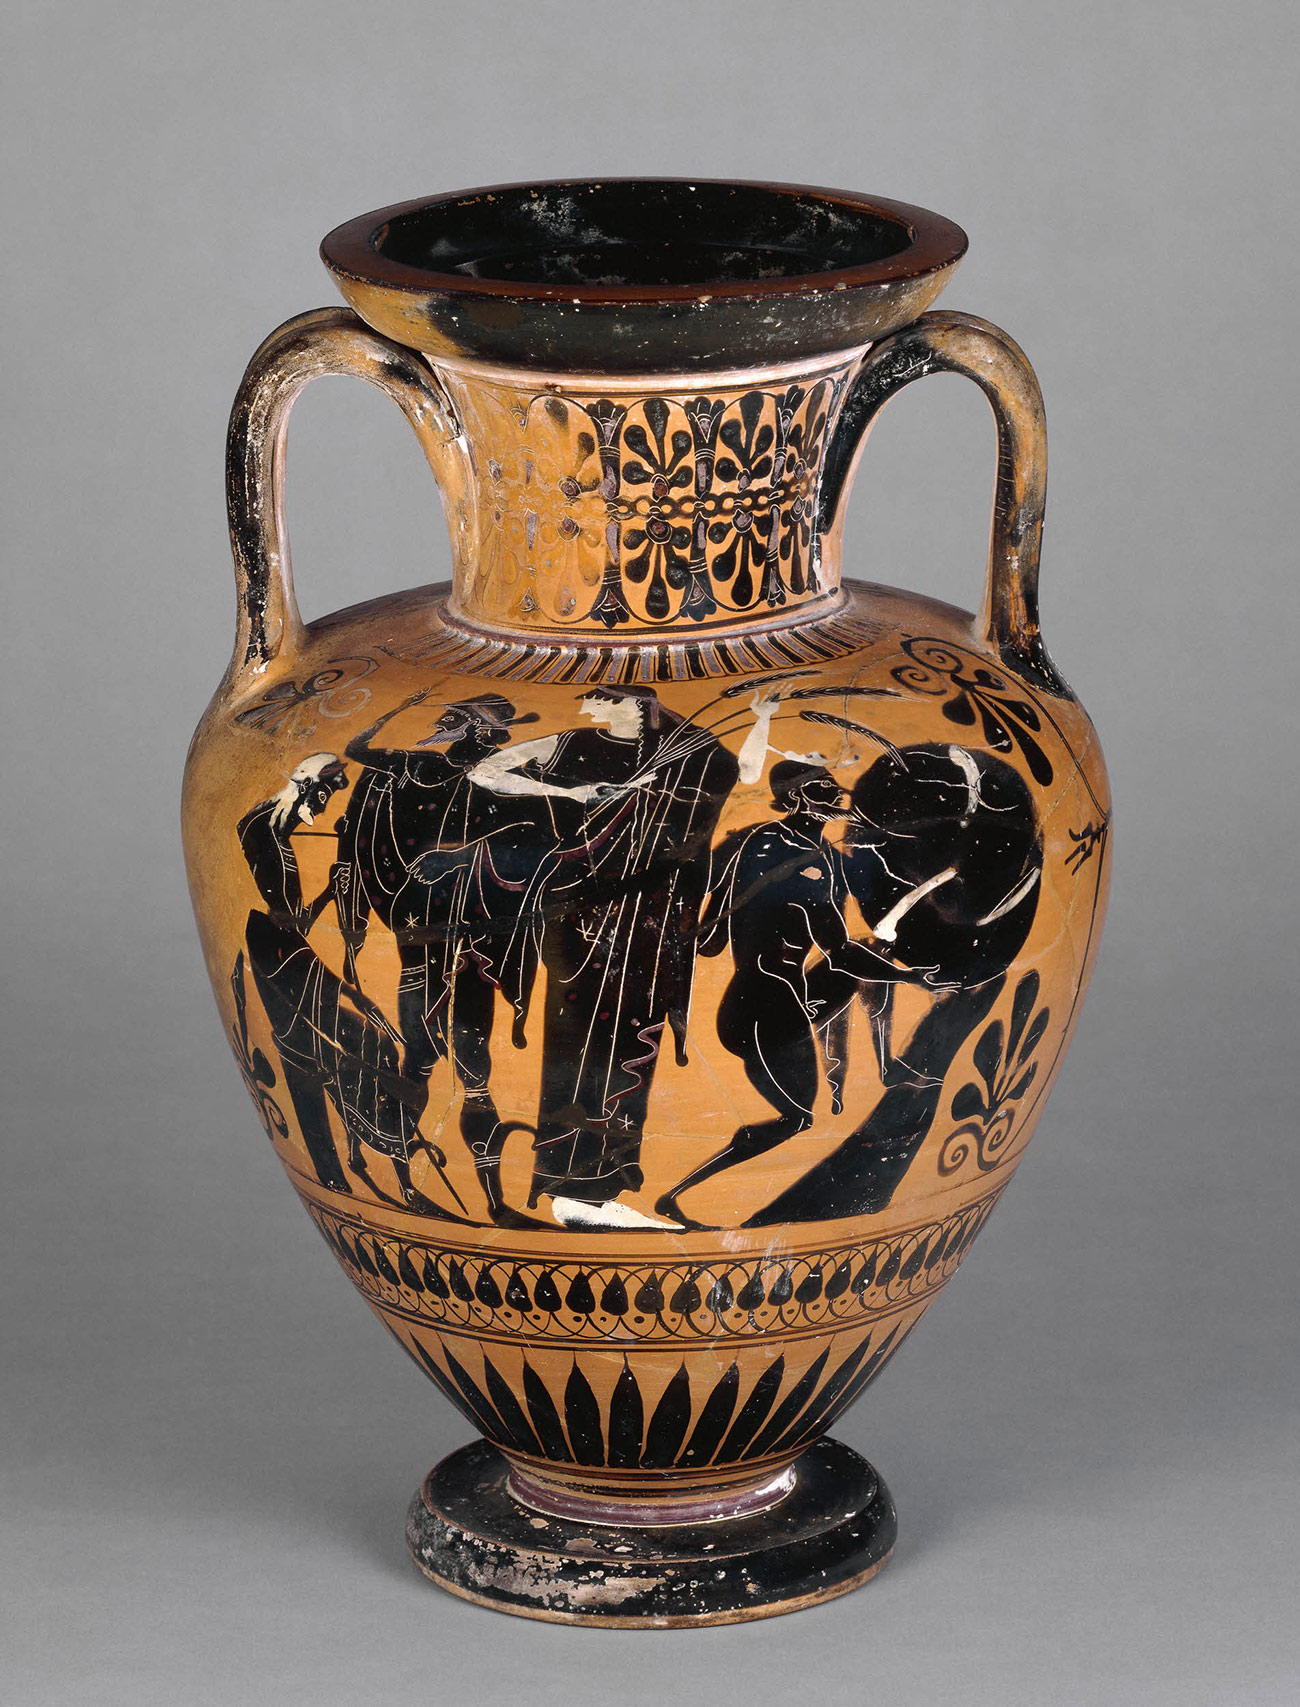 An ancient Greek black-figure vase with a neck and handles